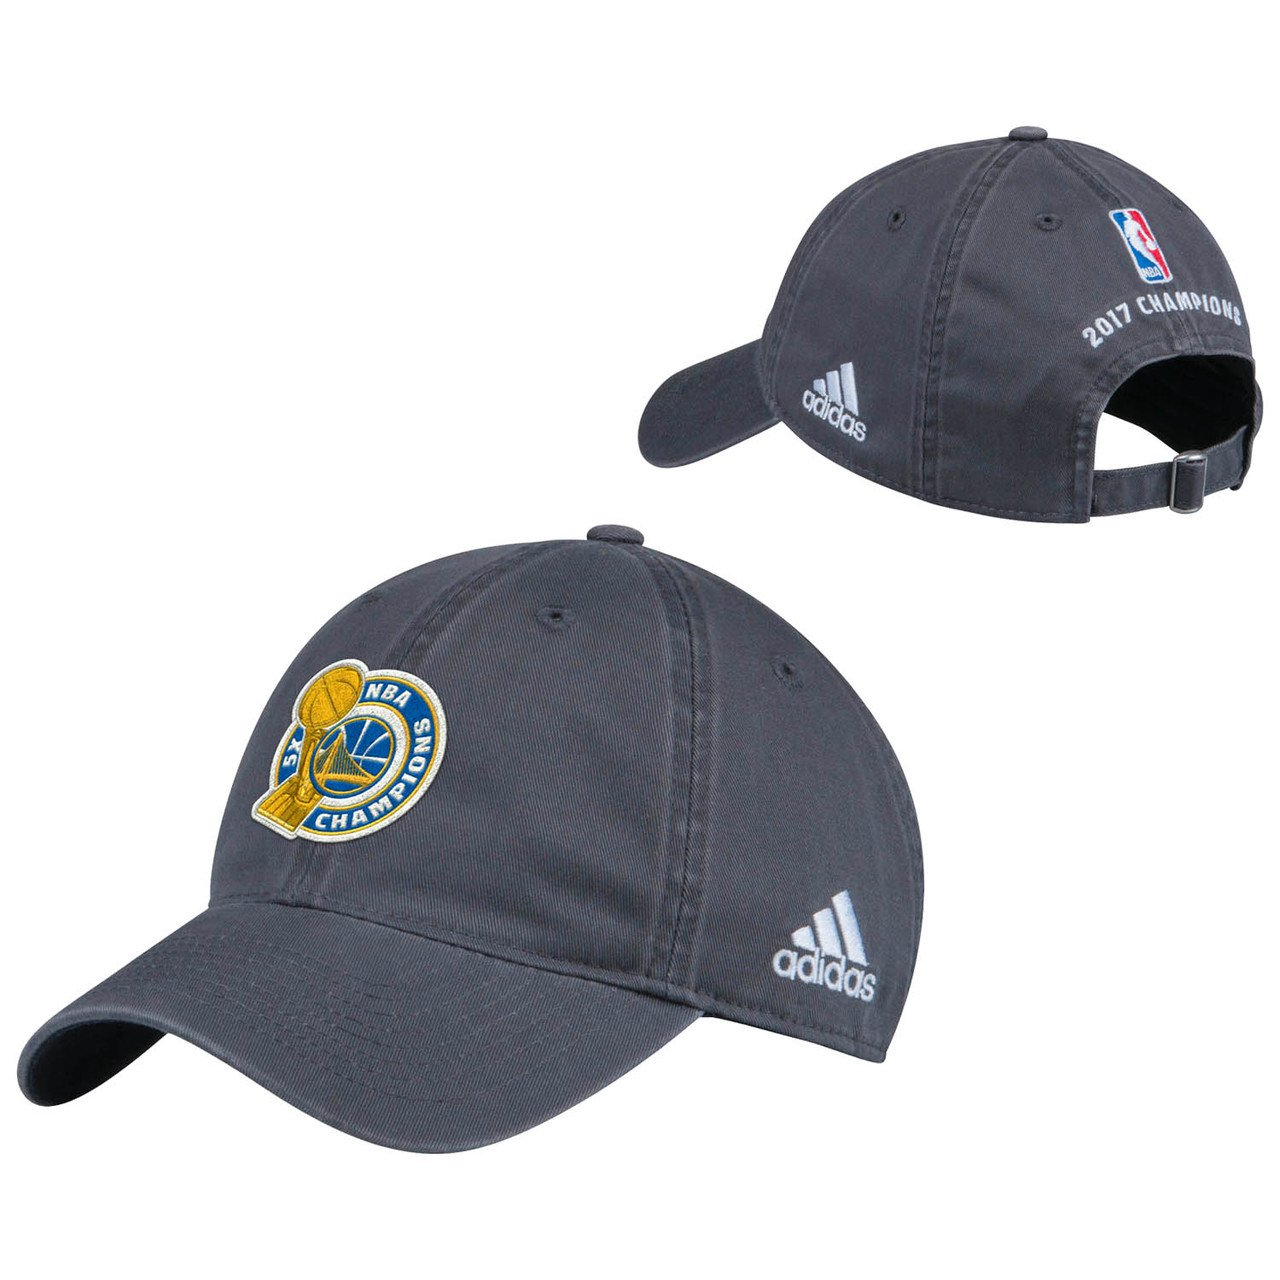 88c4aef8df3 Amazon.com   adidas Golden State Warriors 2017 NBA Finals Champions Grey  Locker Room Unstructured Adjustable Cap Hat   Sports   Outdoors